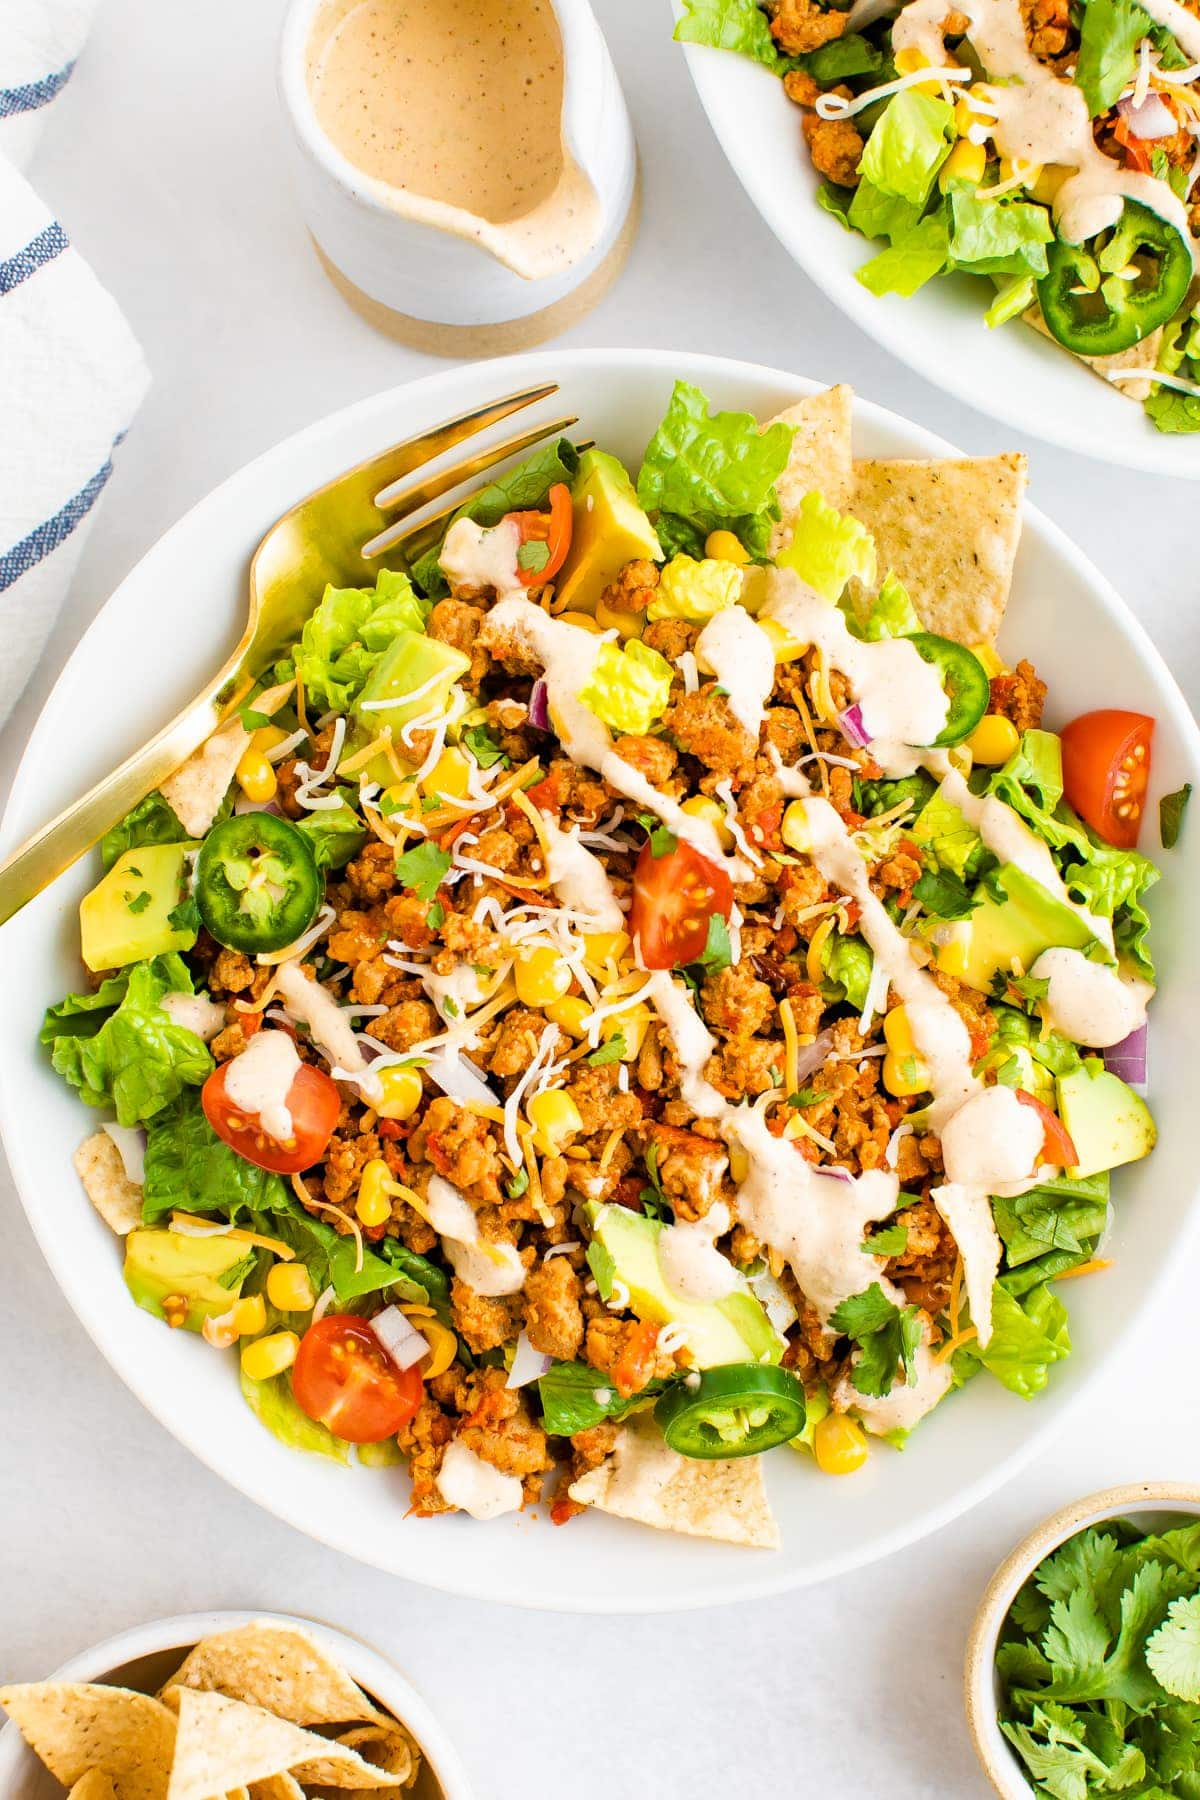 Taco salad topped with ground turkey, avocado, corn, peppers, chips and tomatoes and a southwest dressing.